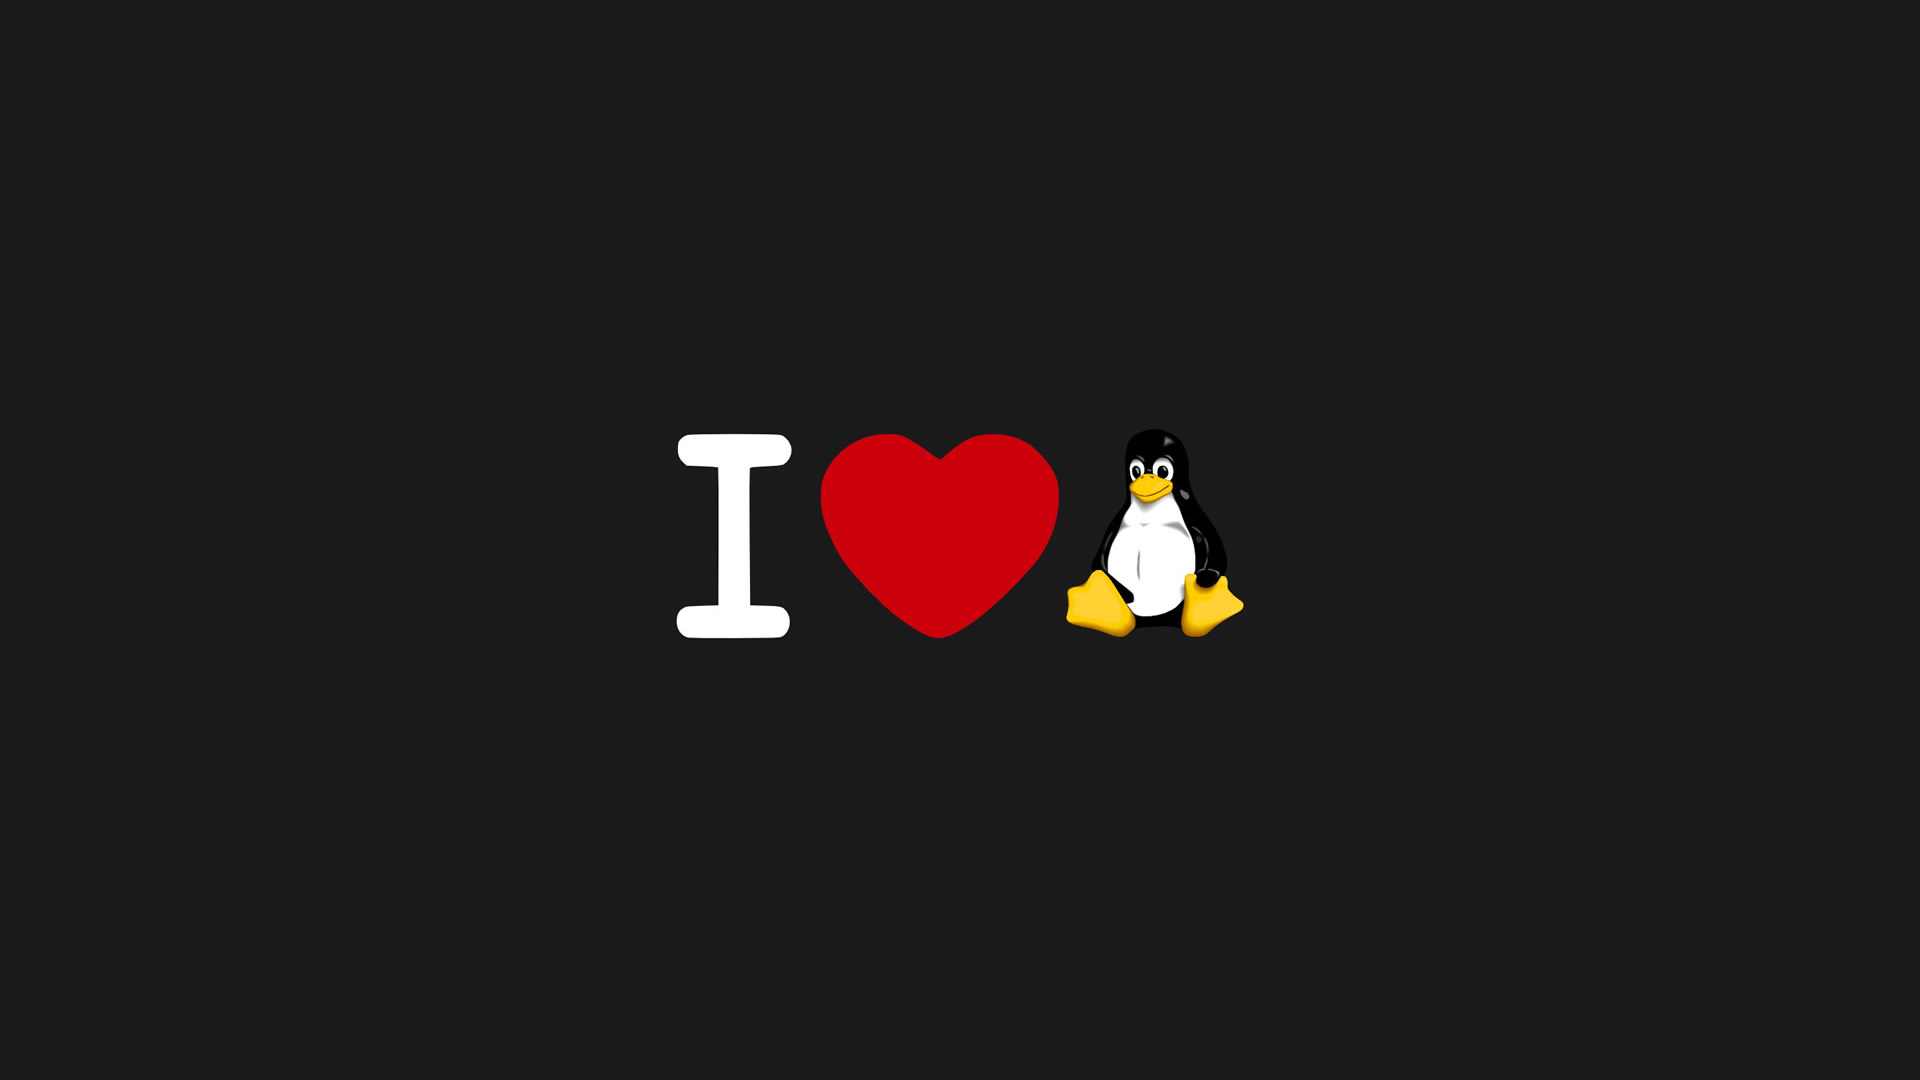 Wallpapers Windows Linux Images Image Funny Background Desktop 1920x1080